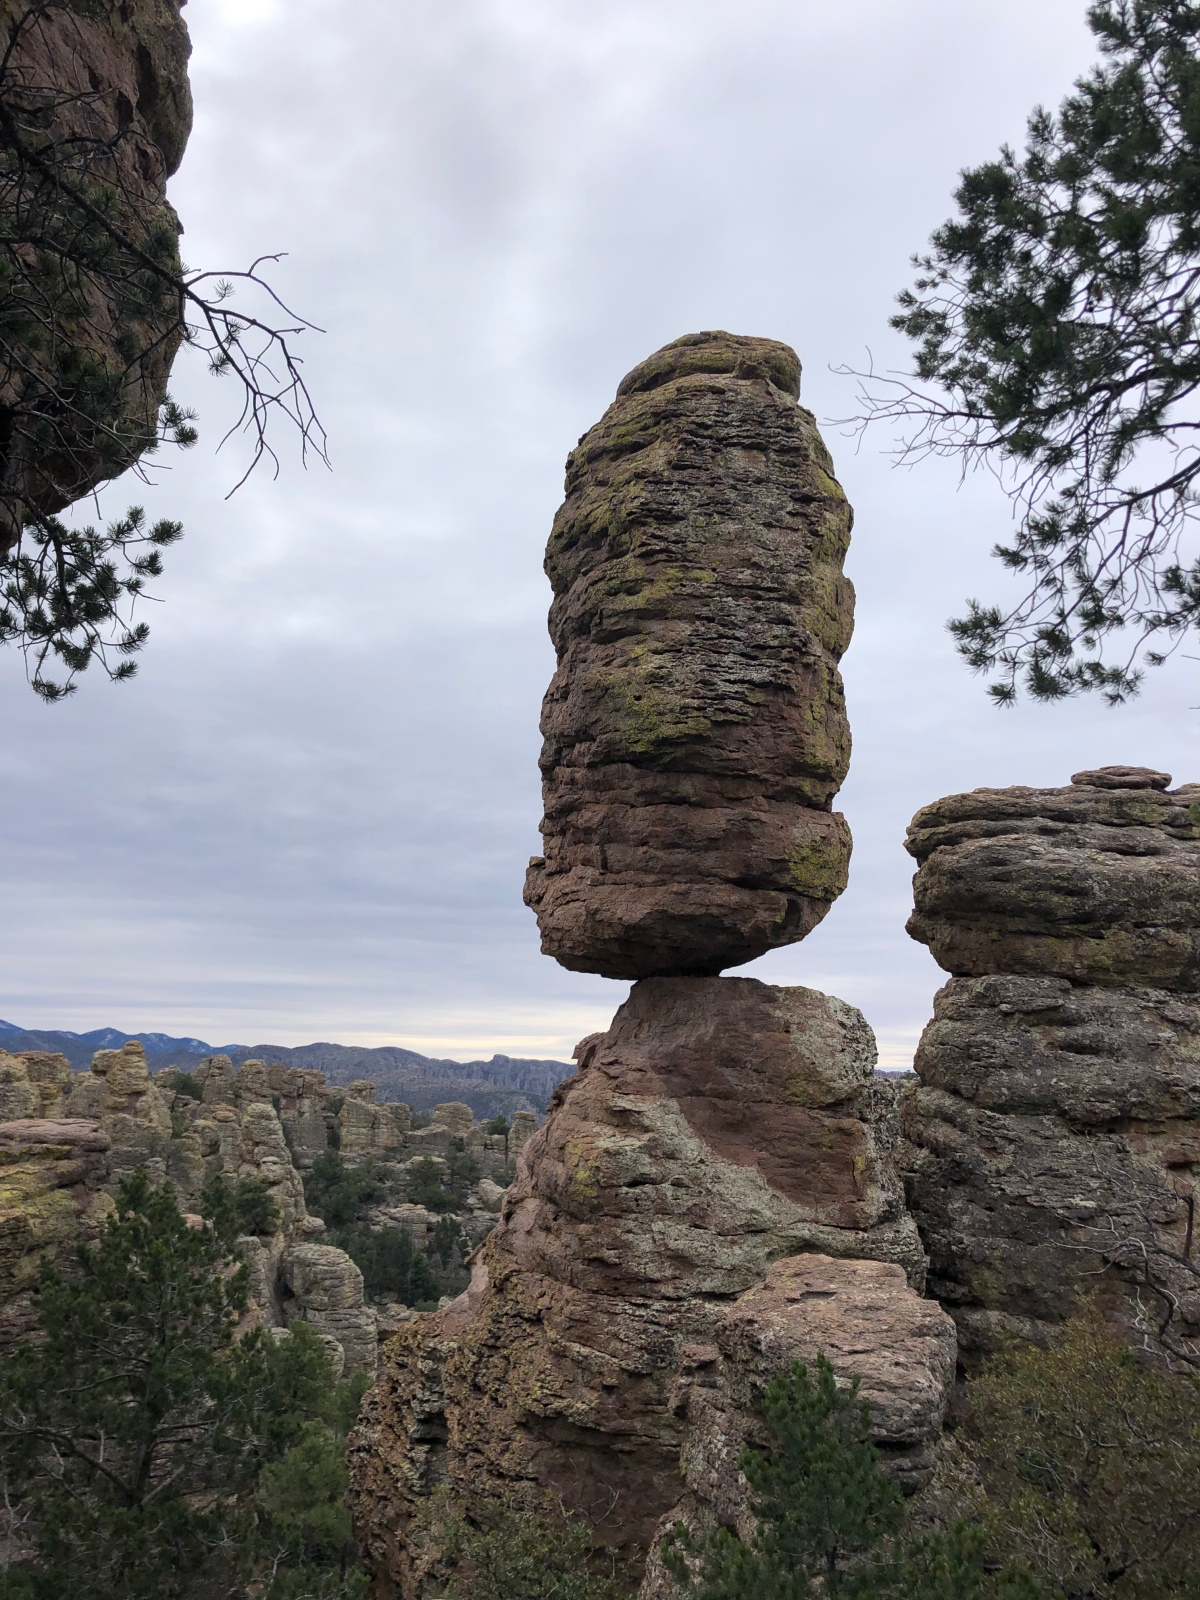 Defying Gravity in Chiricahua National Monument